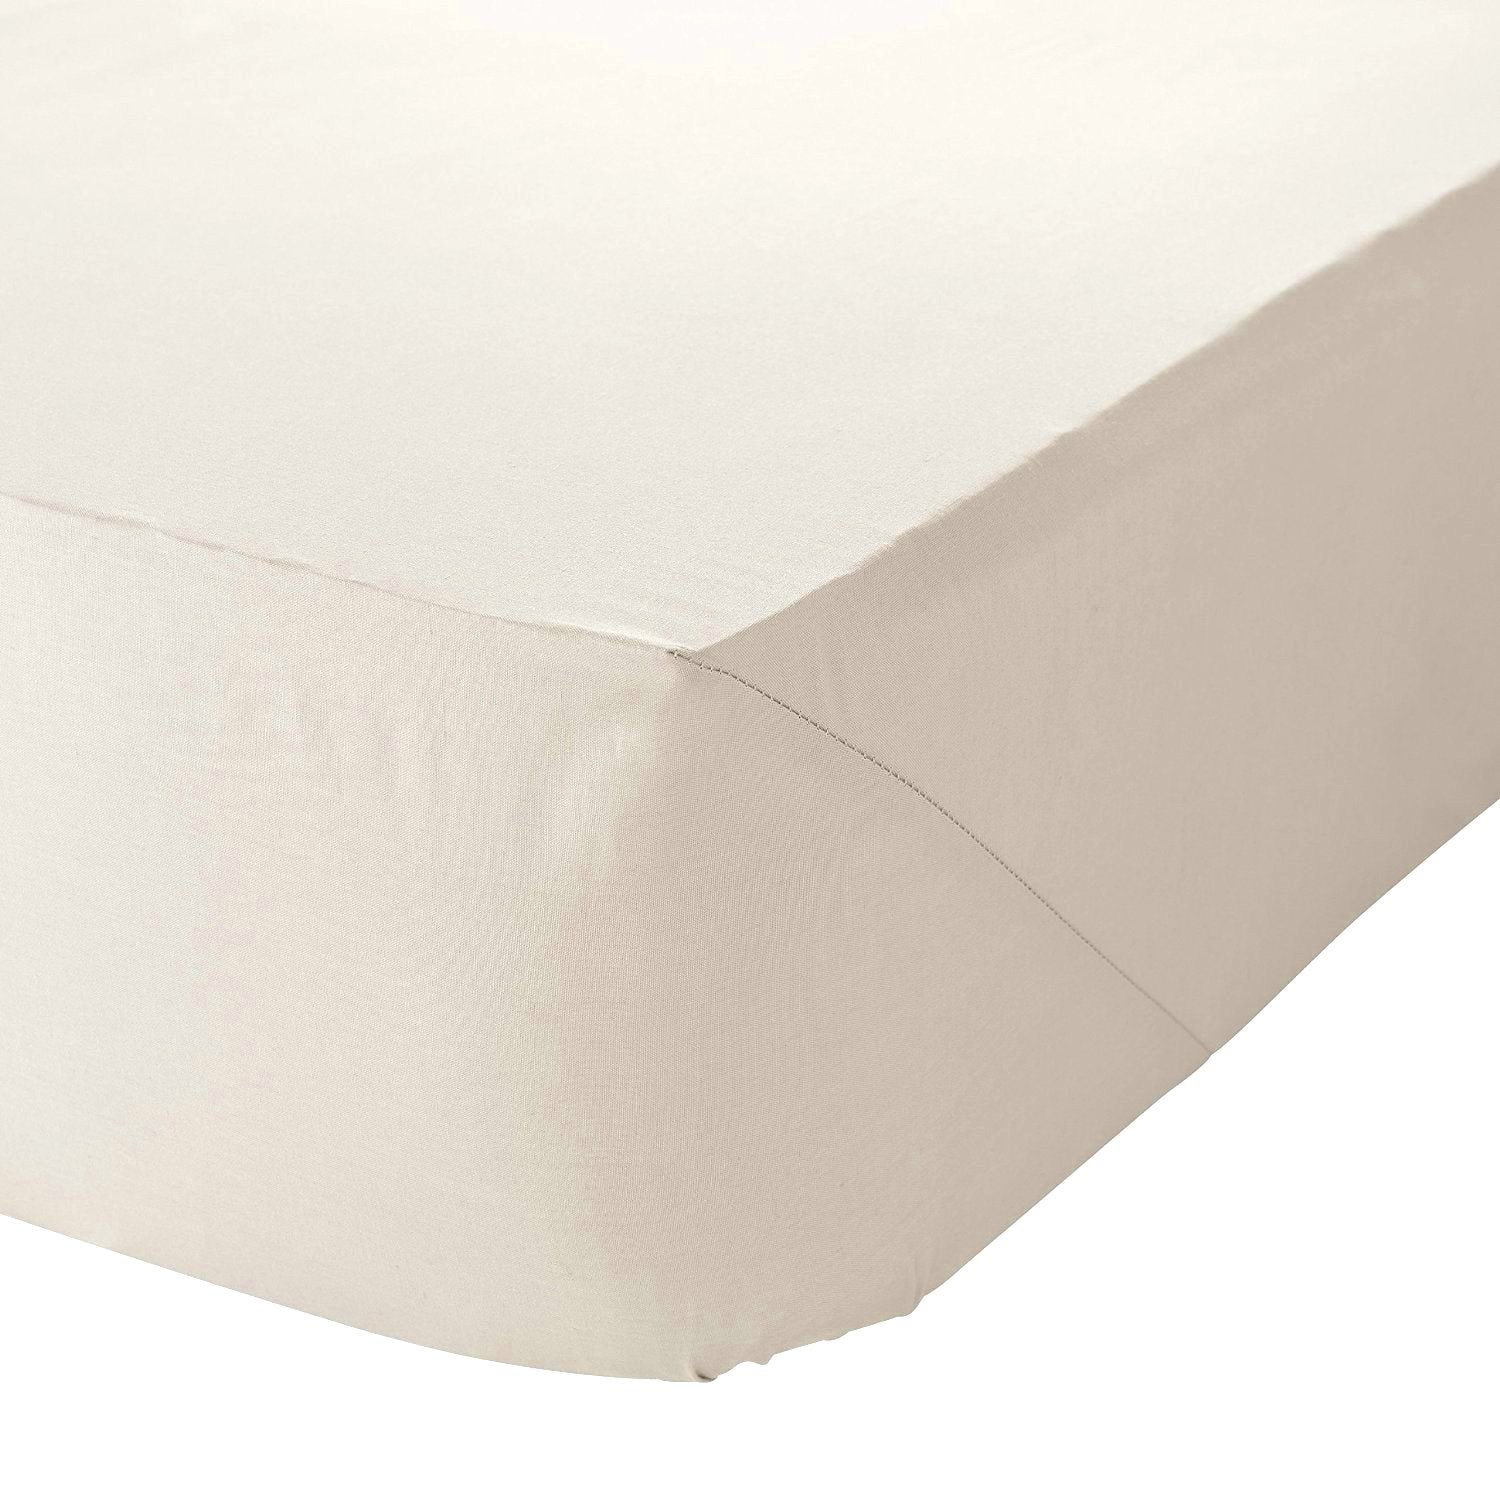 "Emperor Fitted Sheet 16"" Extra Deep Cream Fully Elasticated 200 TC"